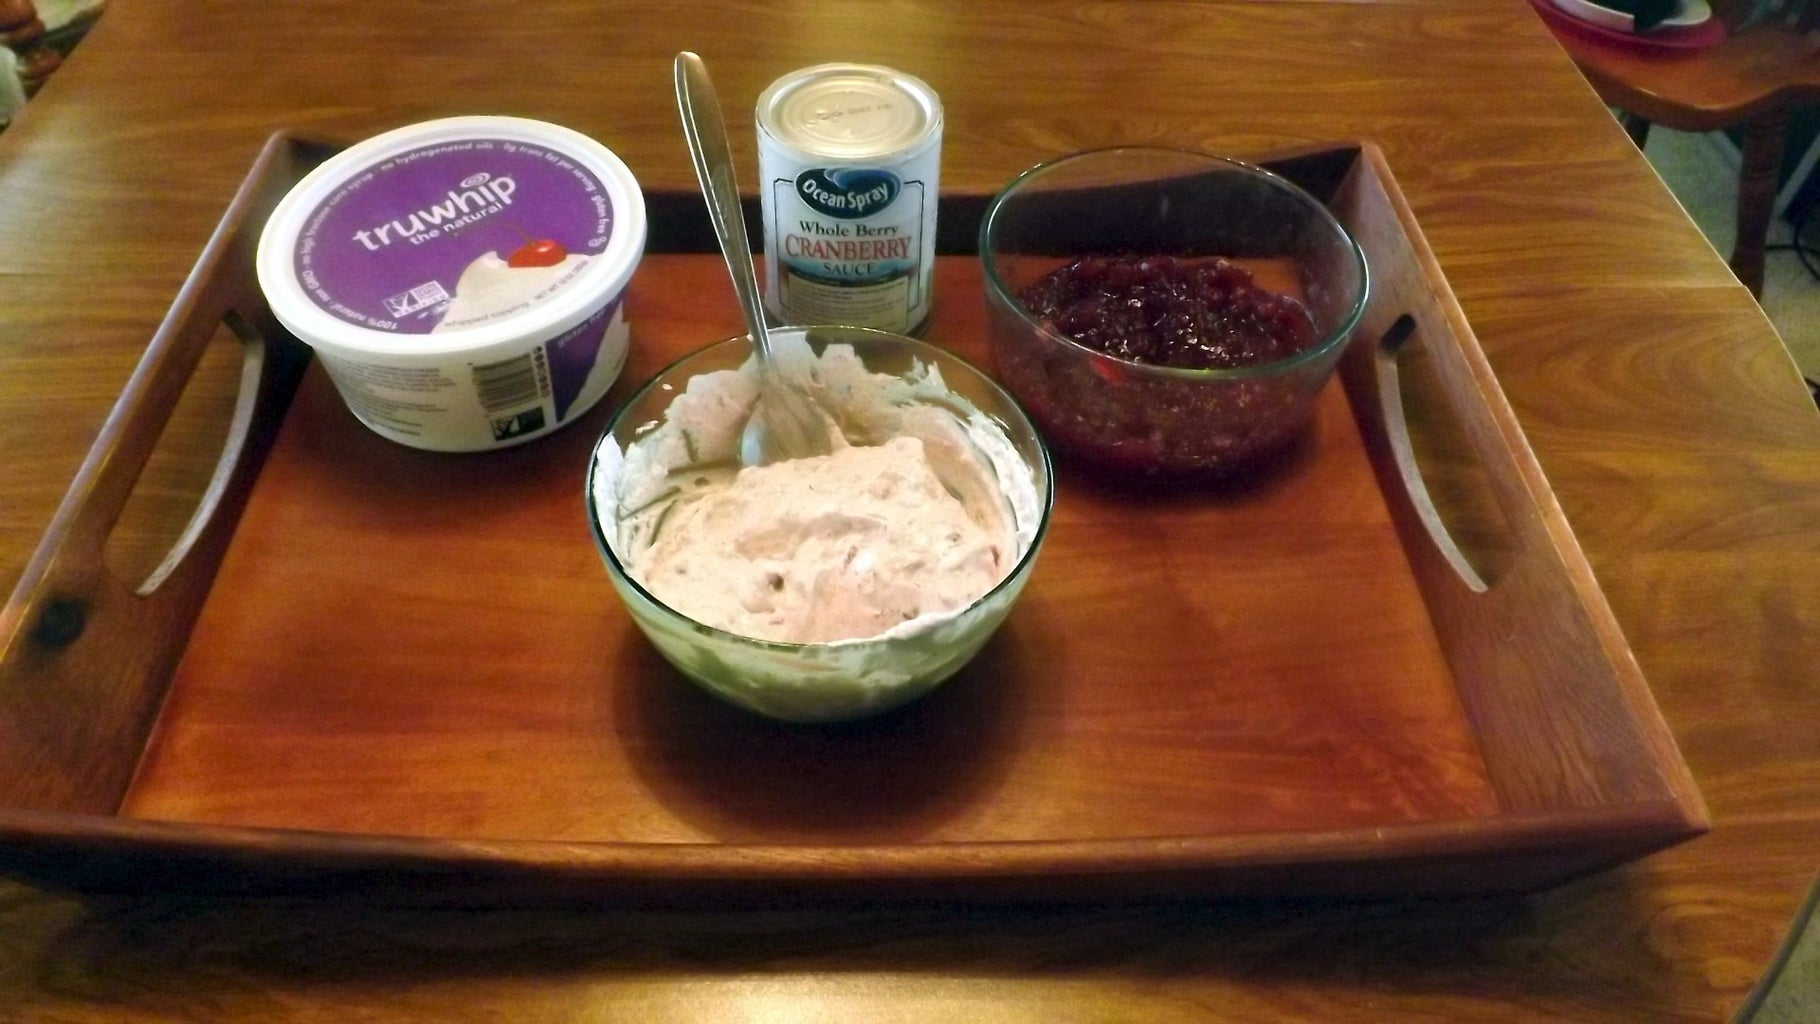 CRANBERRY WHIPPED TOPPING